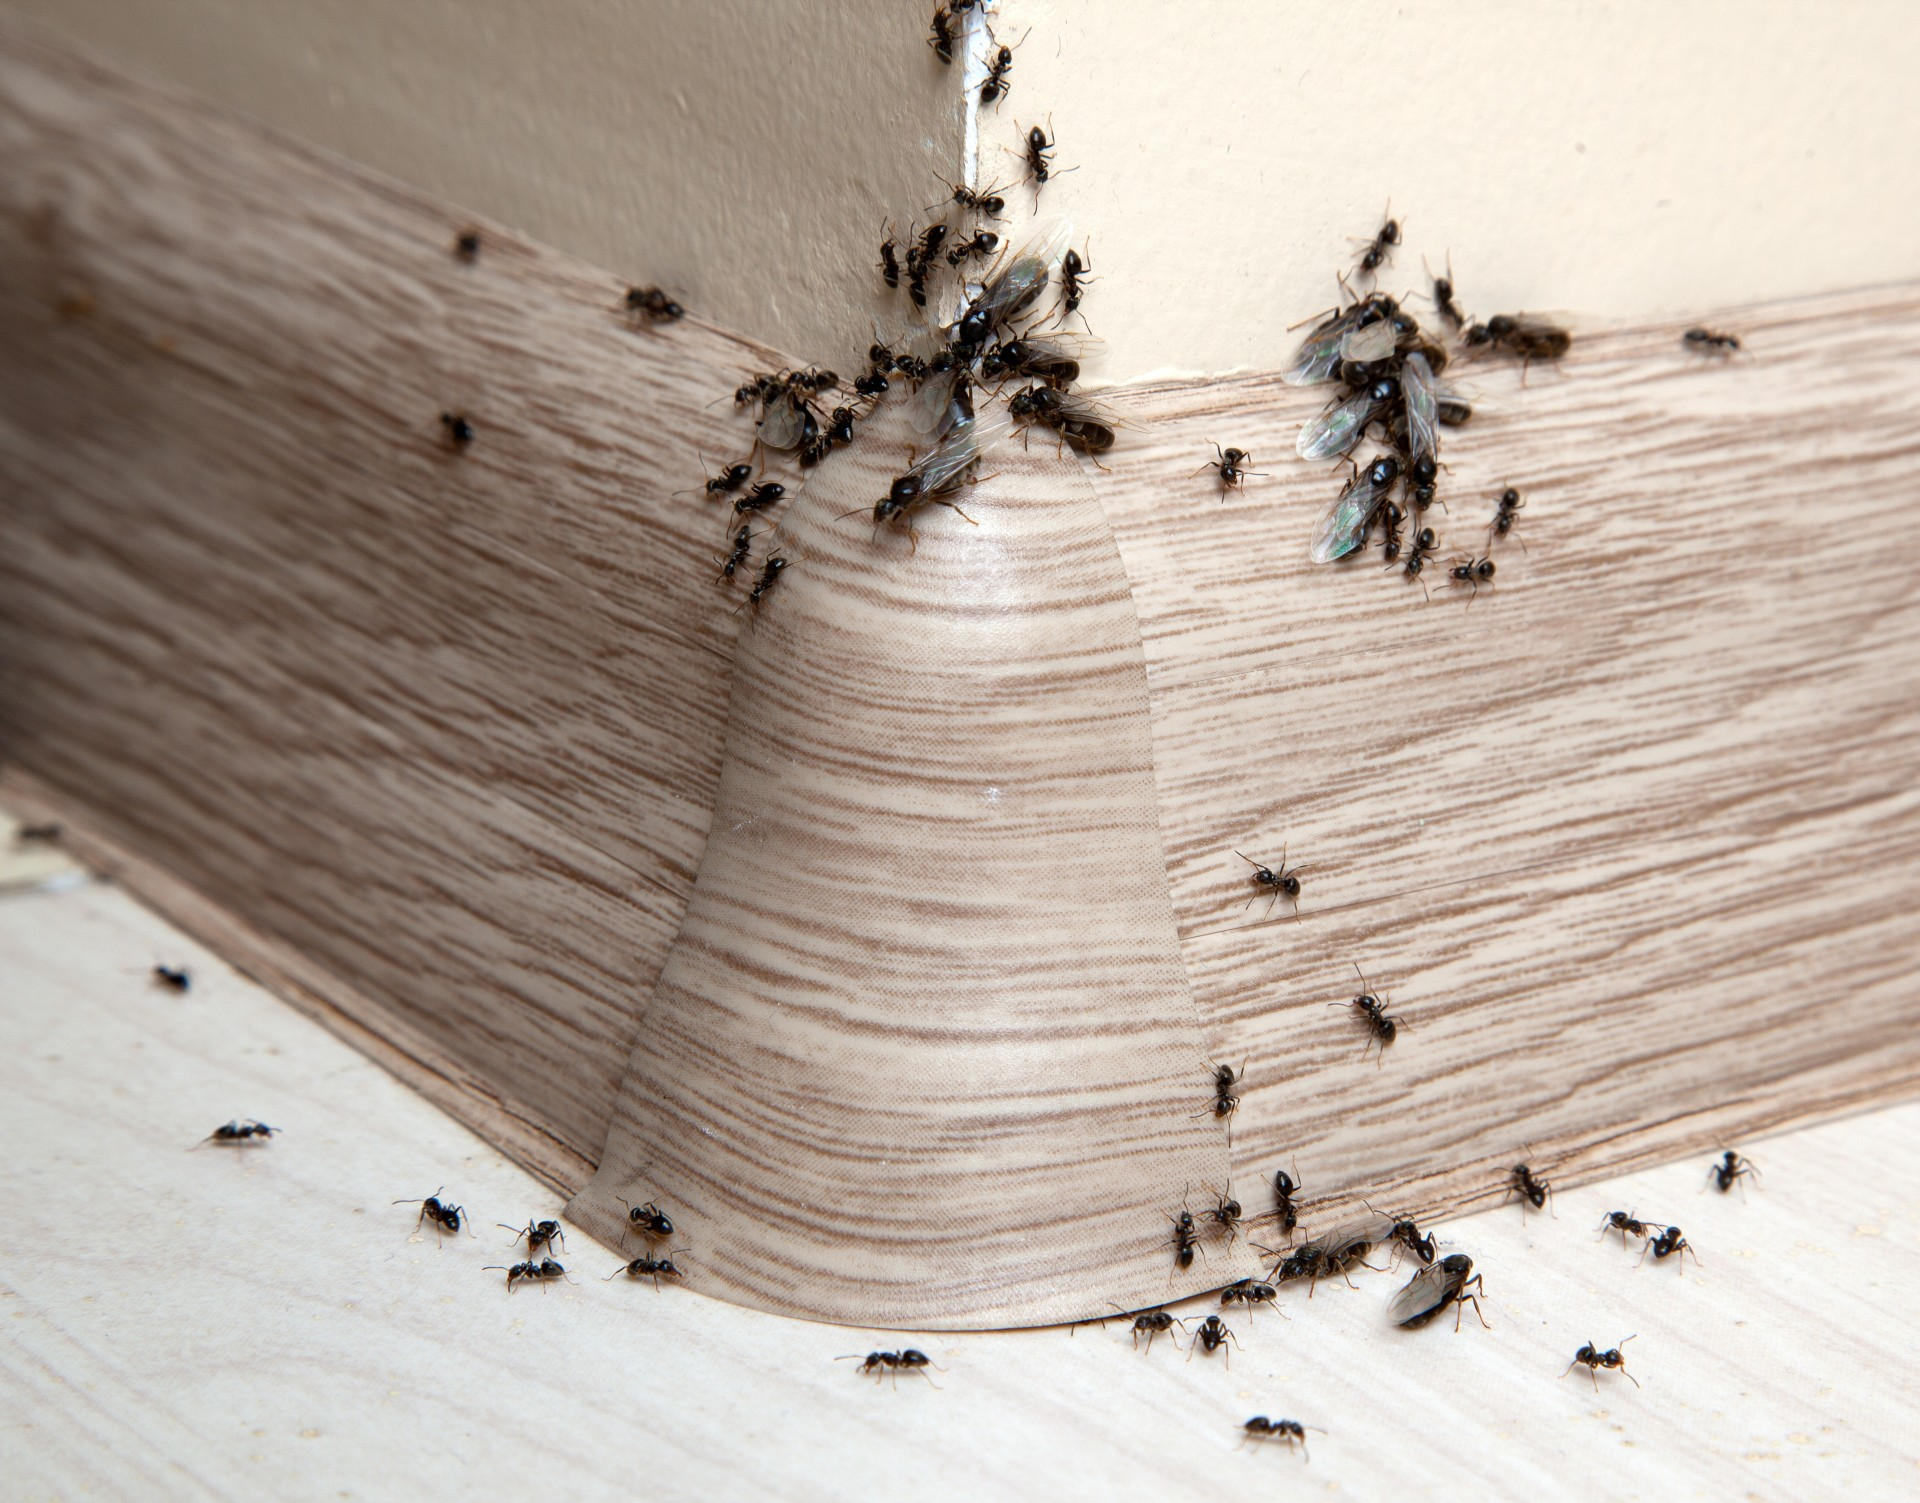 Ant Infestation, Pest Control in Downside, Cobham, Stoke d'Abernon, KT11. Call Now 020 8166 9746